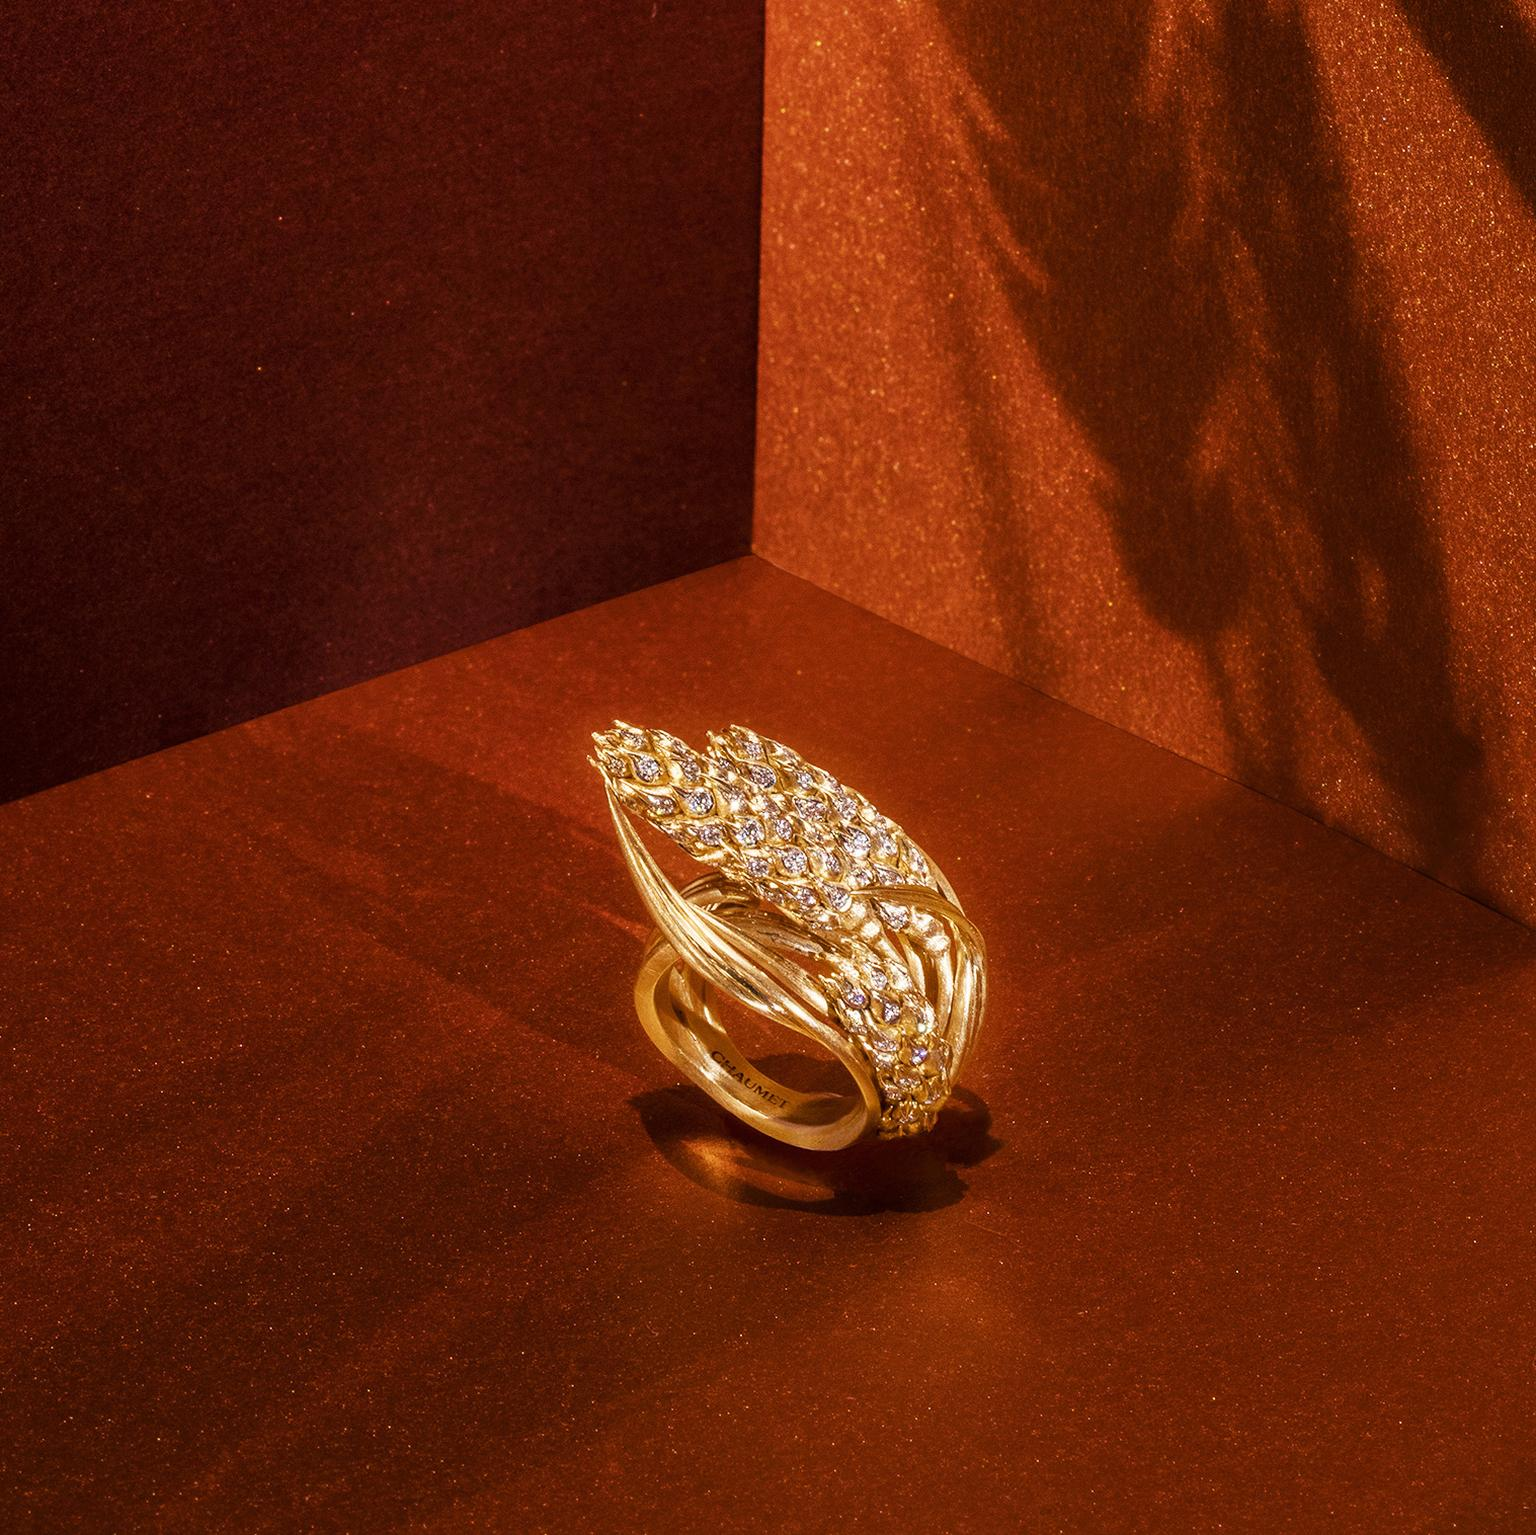 Chaumet L'Epi de Blé wheat ring